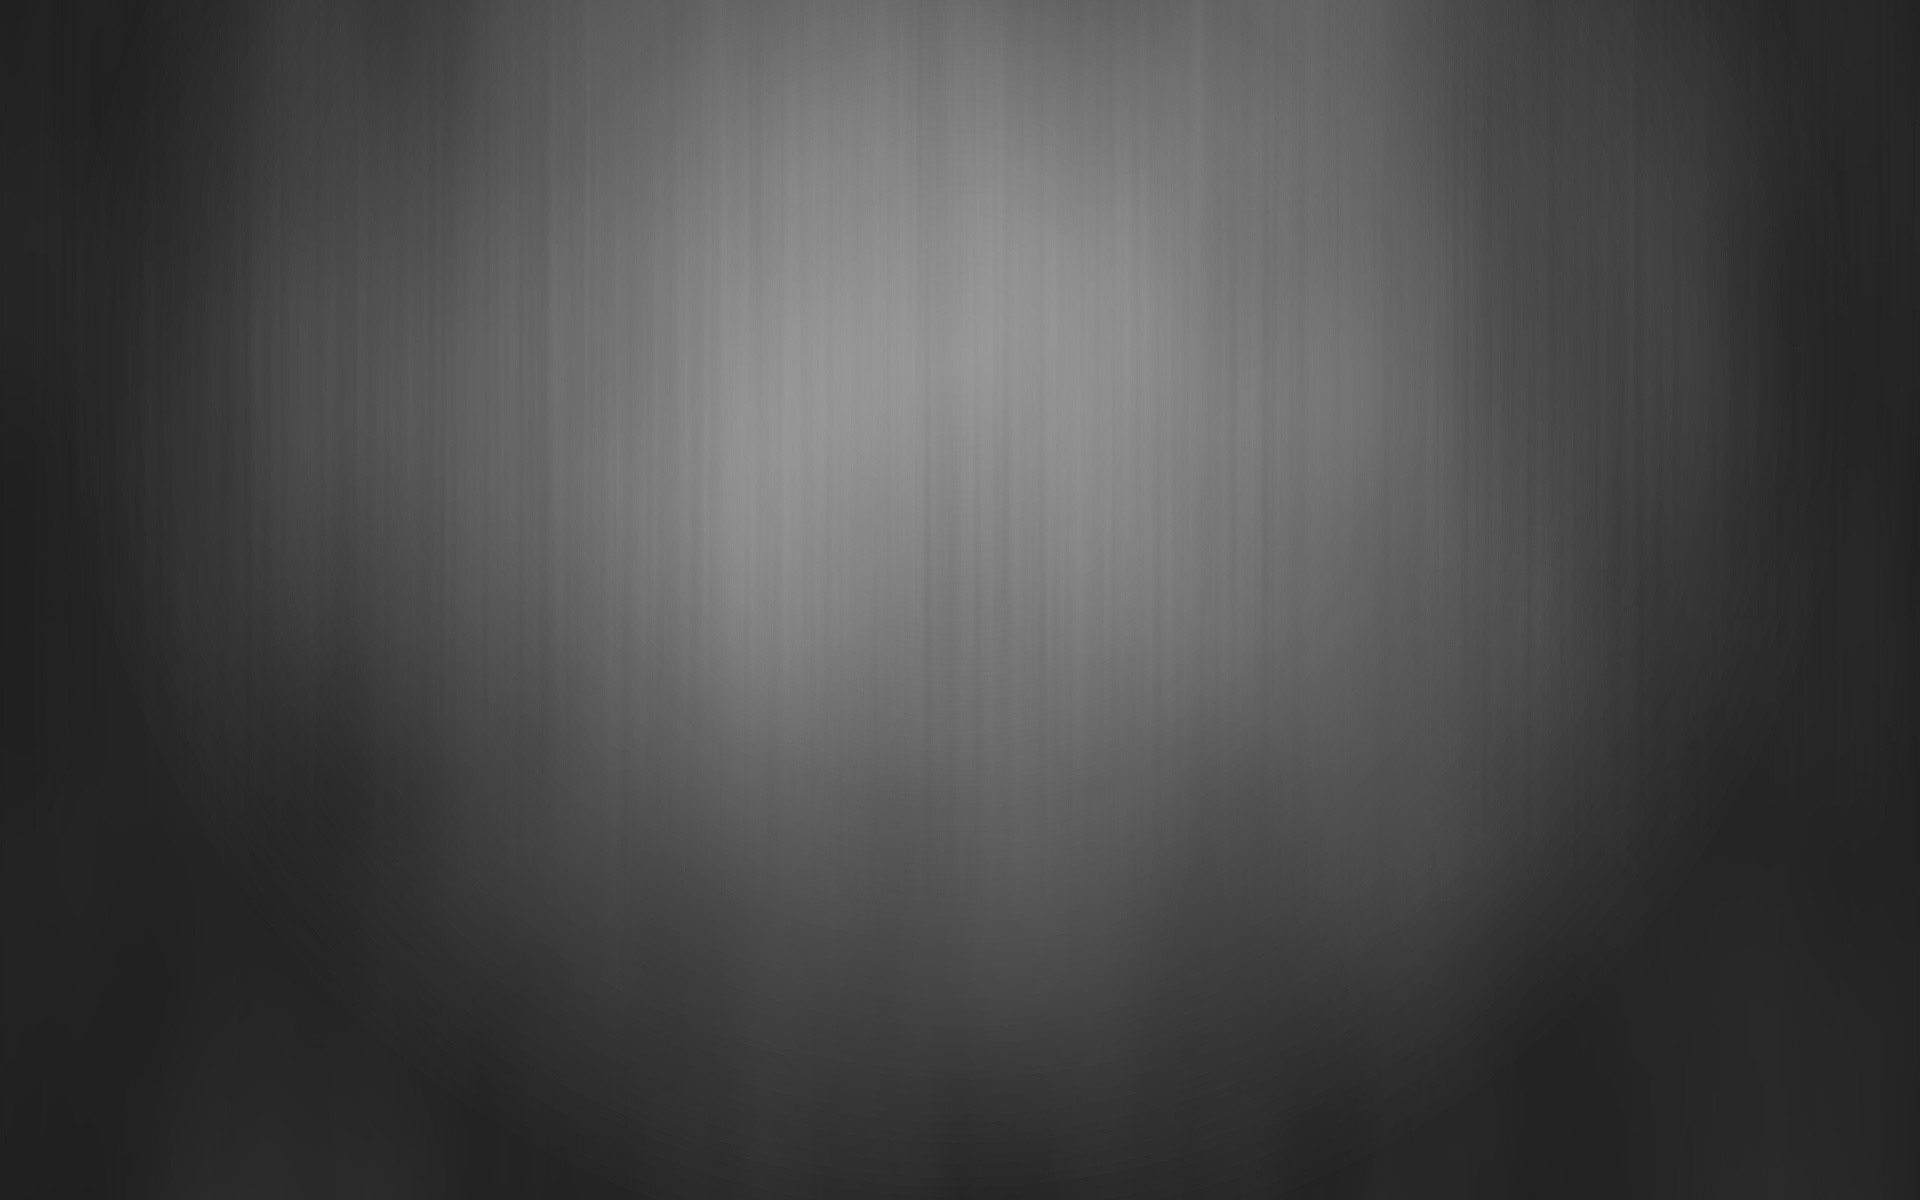 … cool-black-background-4454-hd-wallpapers-background.jpg.